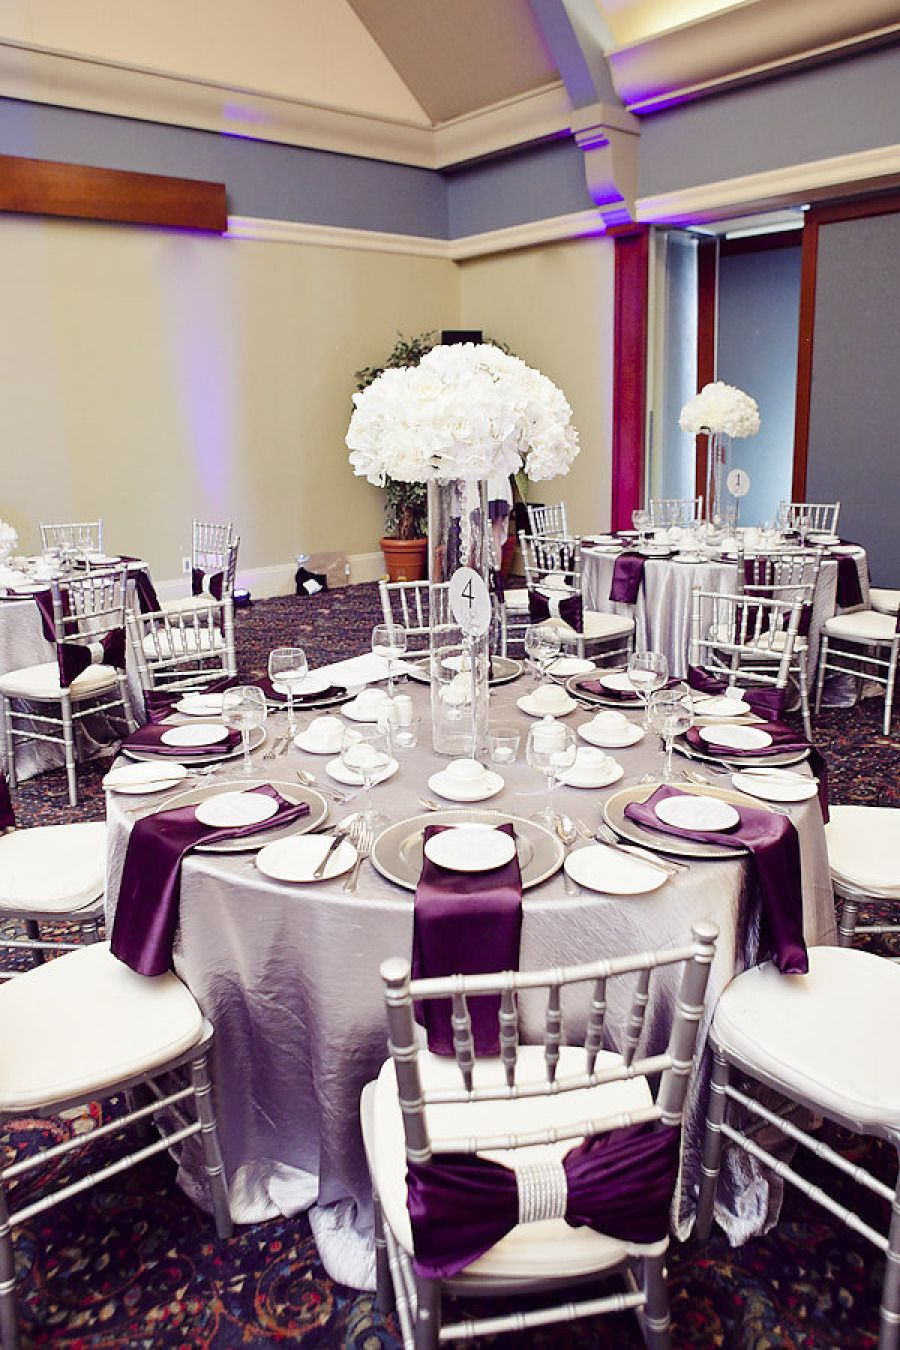 Ontario Fusion Wedding From Rowell Photography Linens Purple